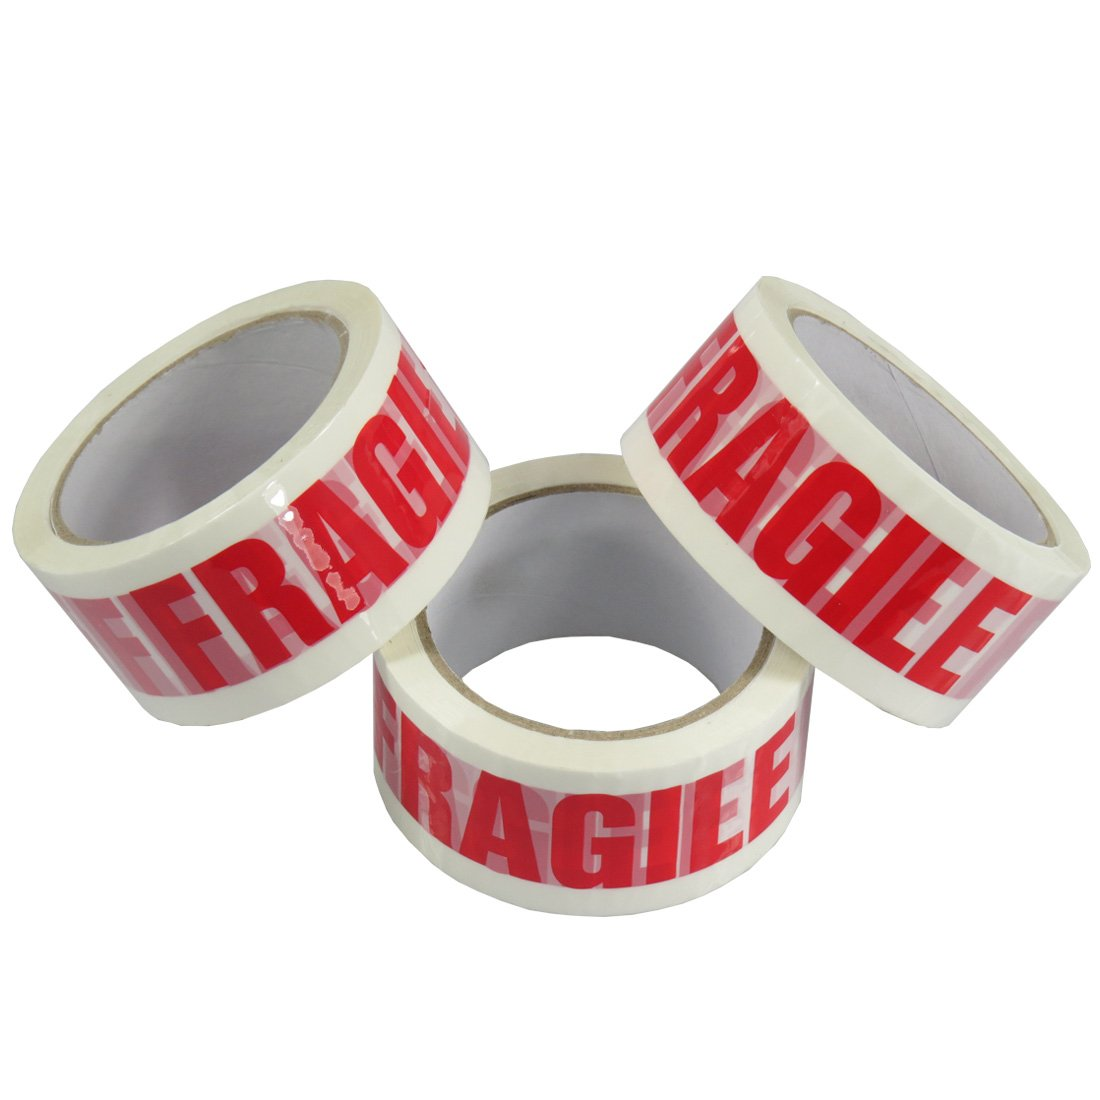 Triplast 48 mm x 66 m Fragile Printed Low Noise Parcel Packing Tape Pack of 2